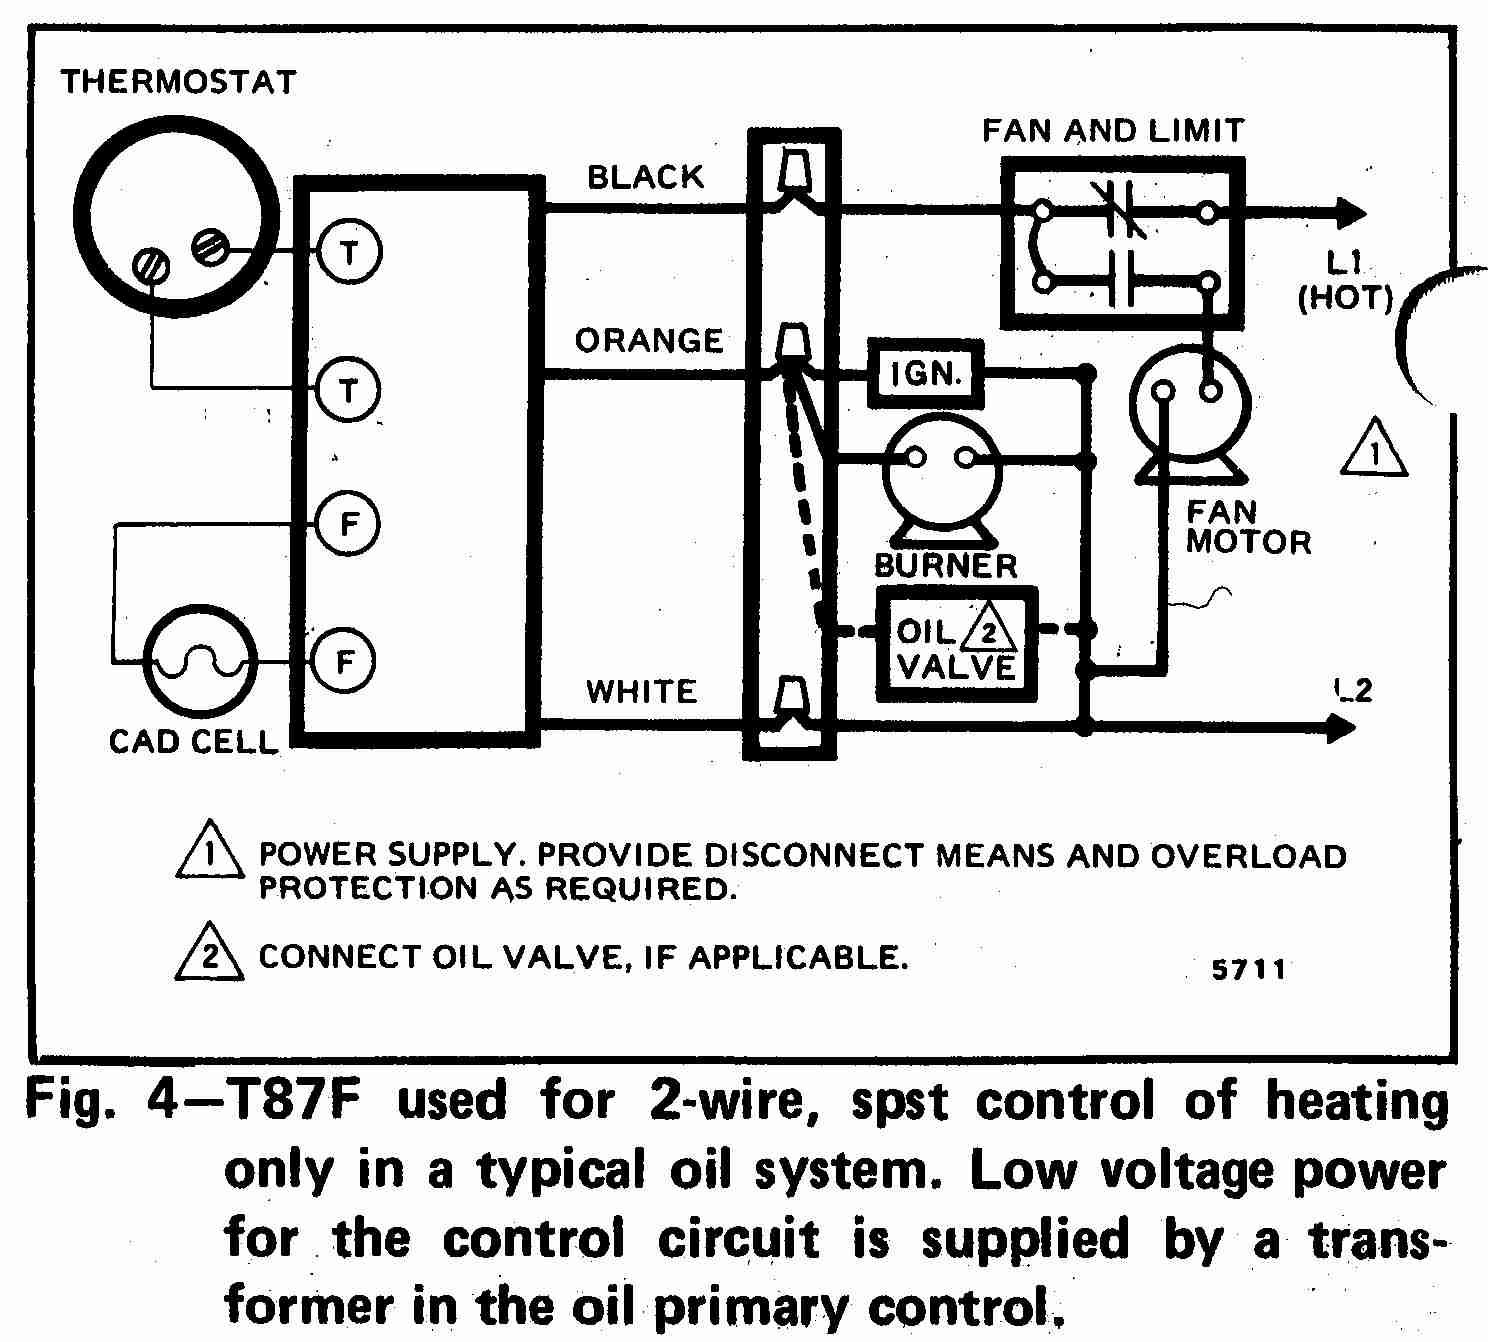 room thermostat wiring diagrams for hvac systems,Wiring diagram,Wiring Diagrams Hvac